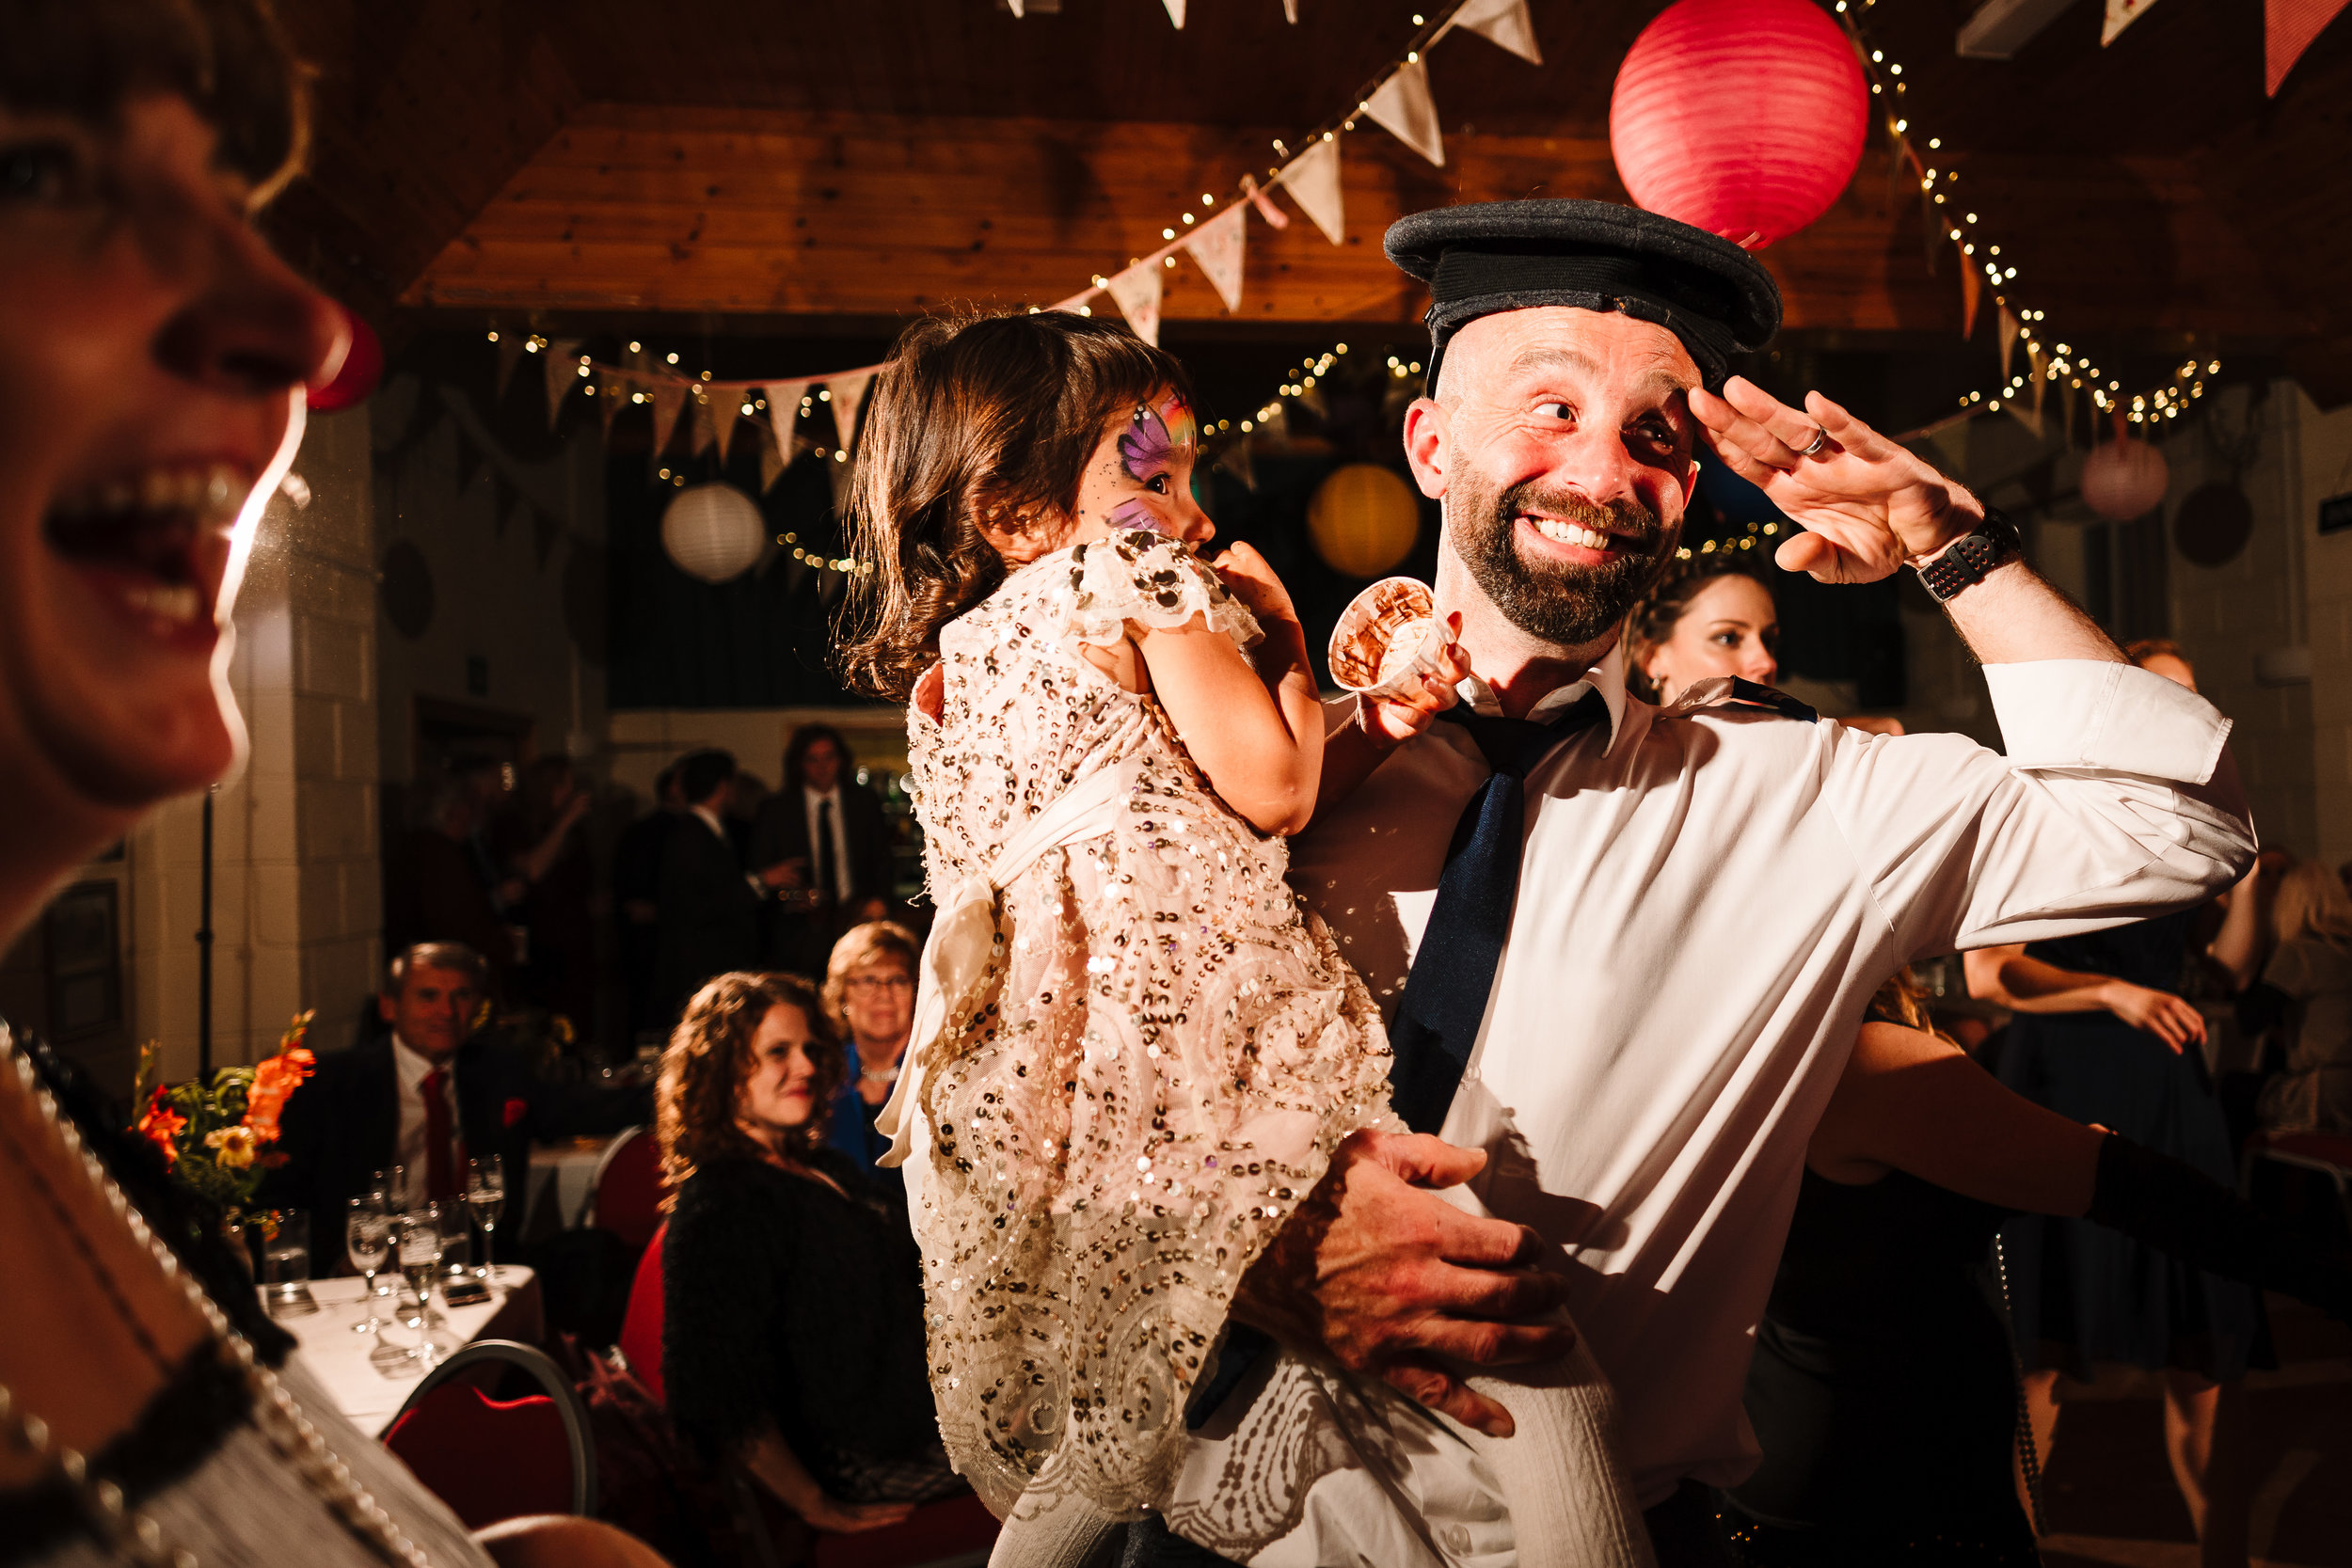 A wedding guest saluting with a sailor's hat on